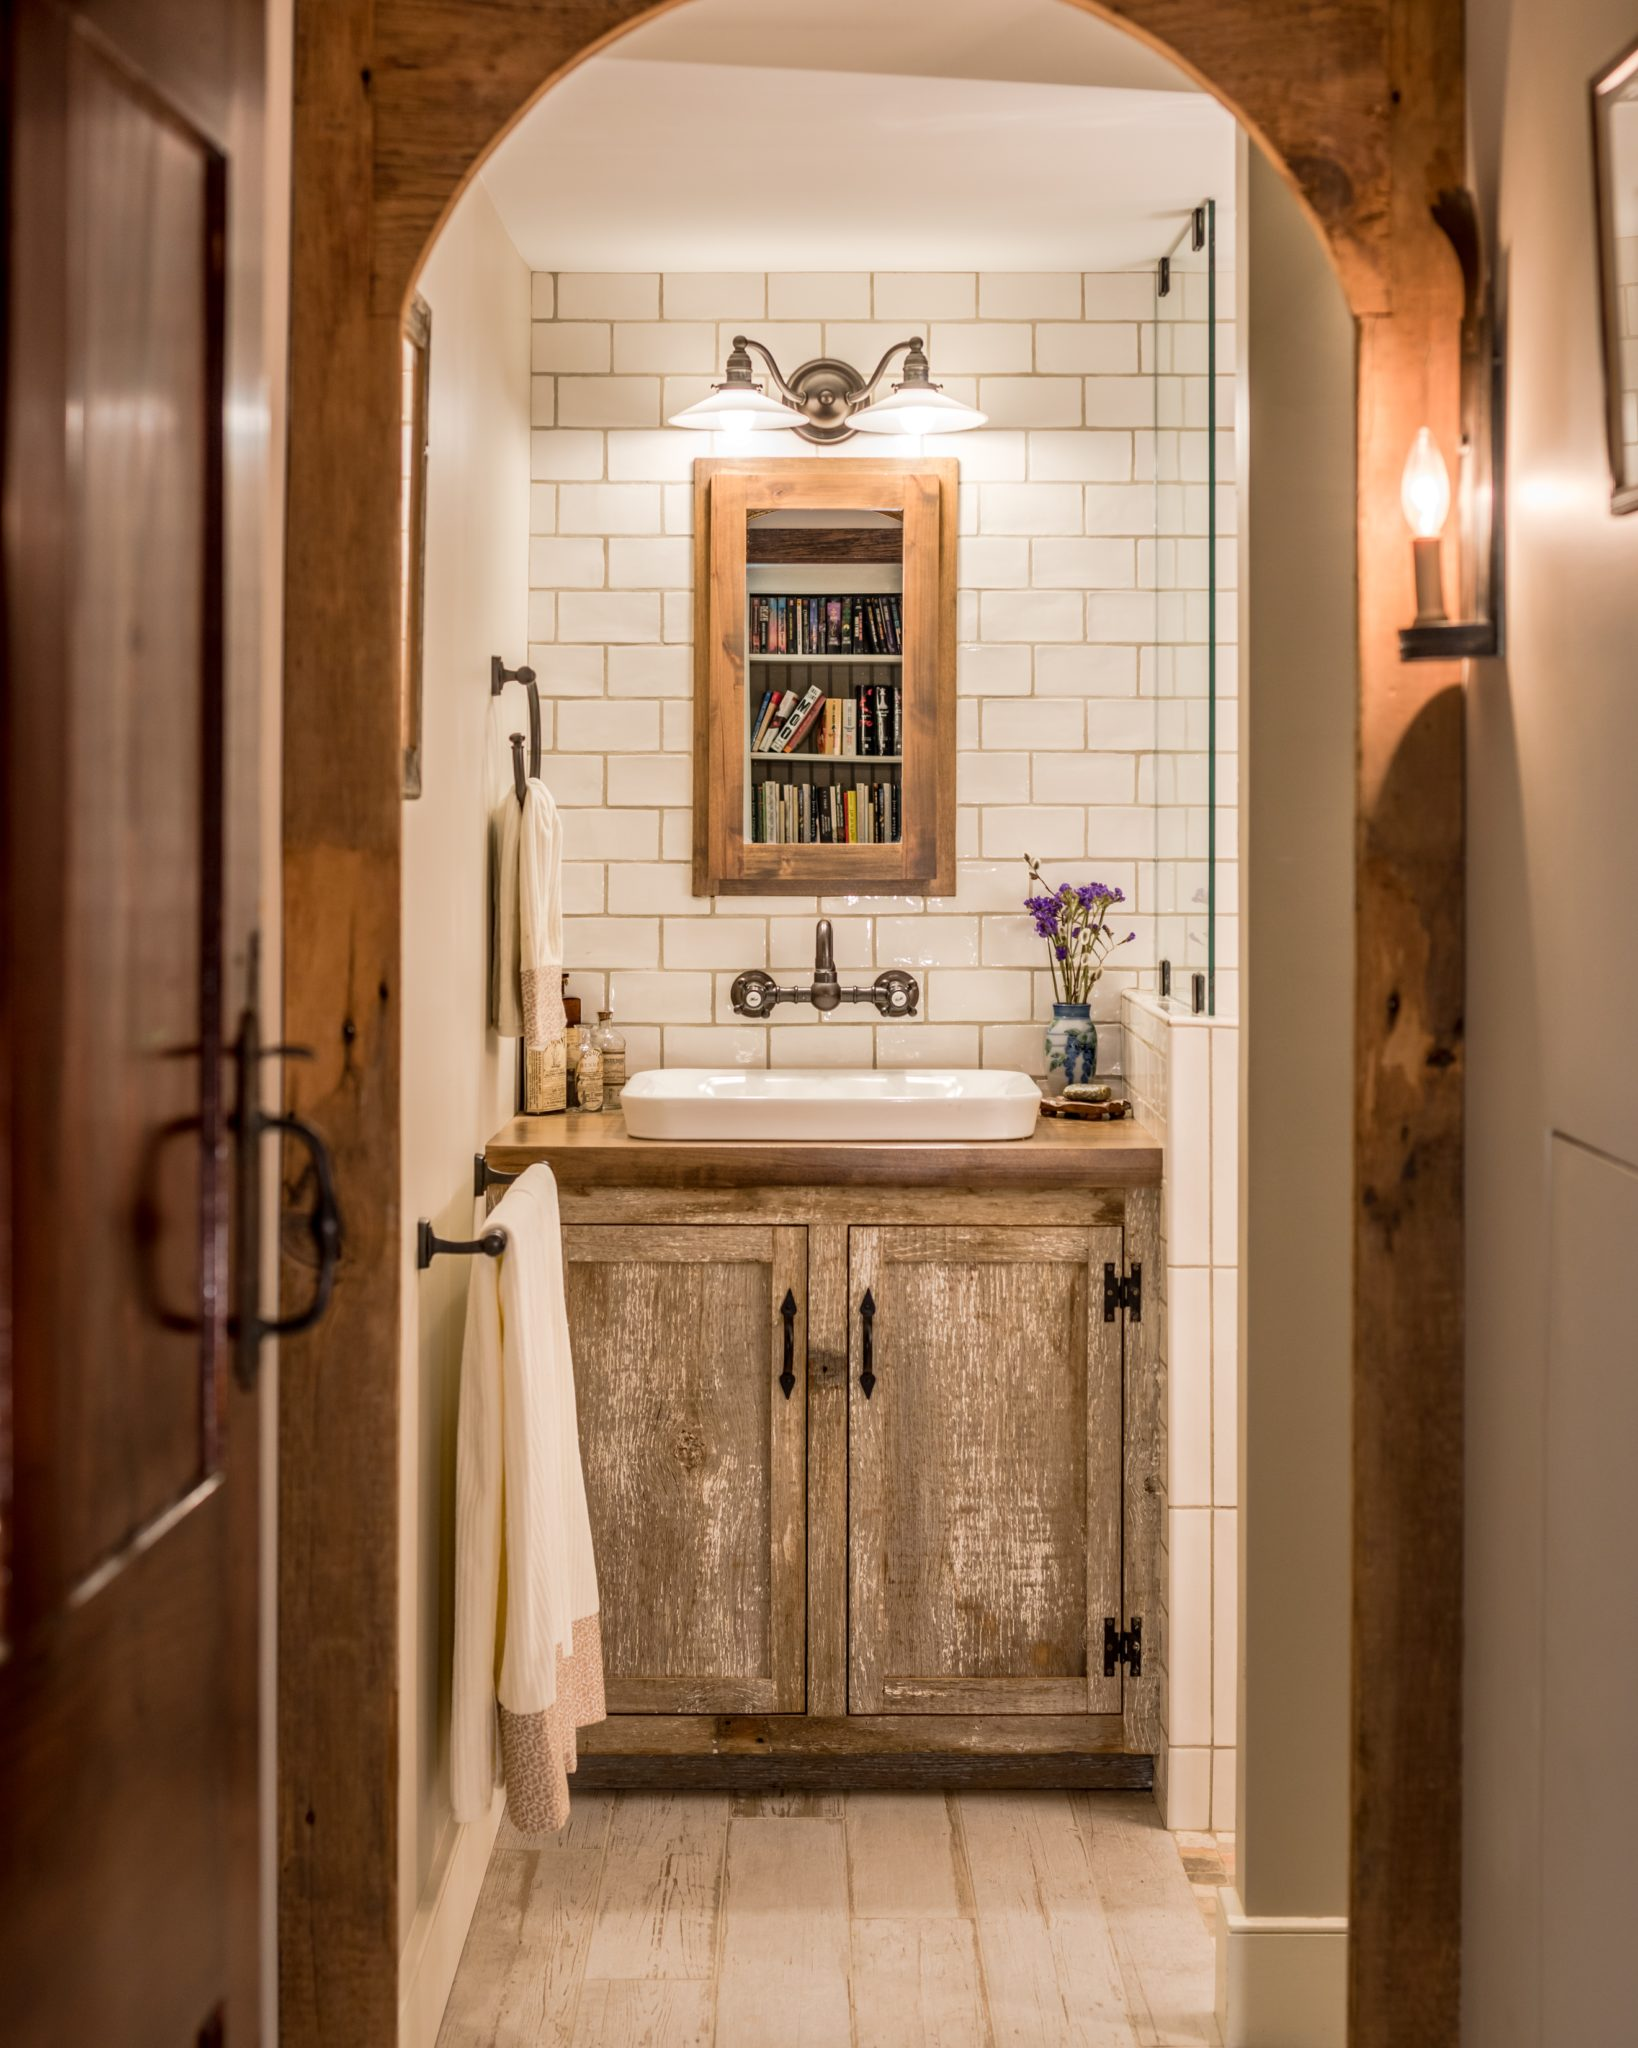 Rustic farmhouse bathroom with natural wood and white tile by Period Architecture